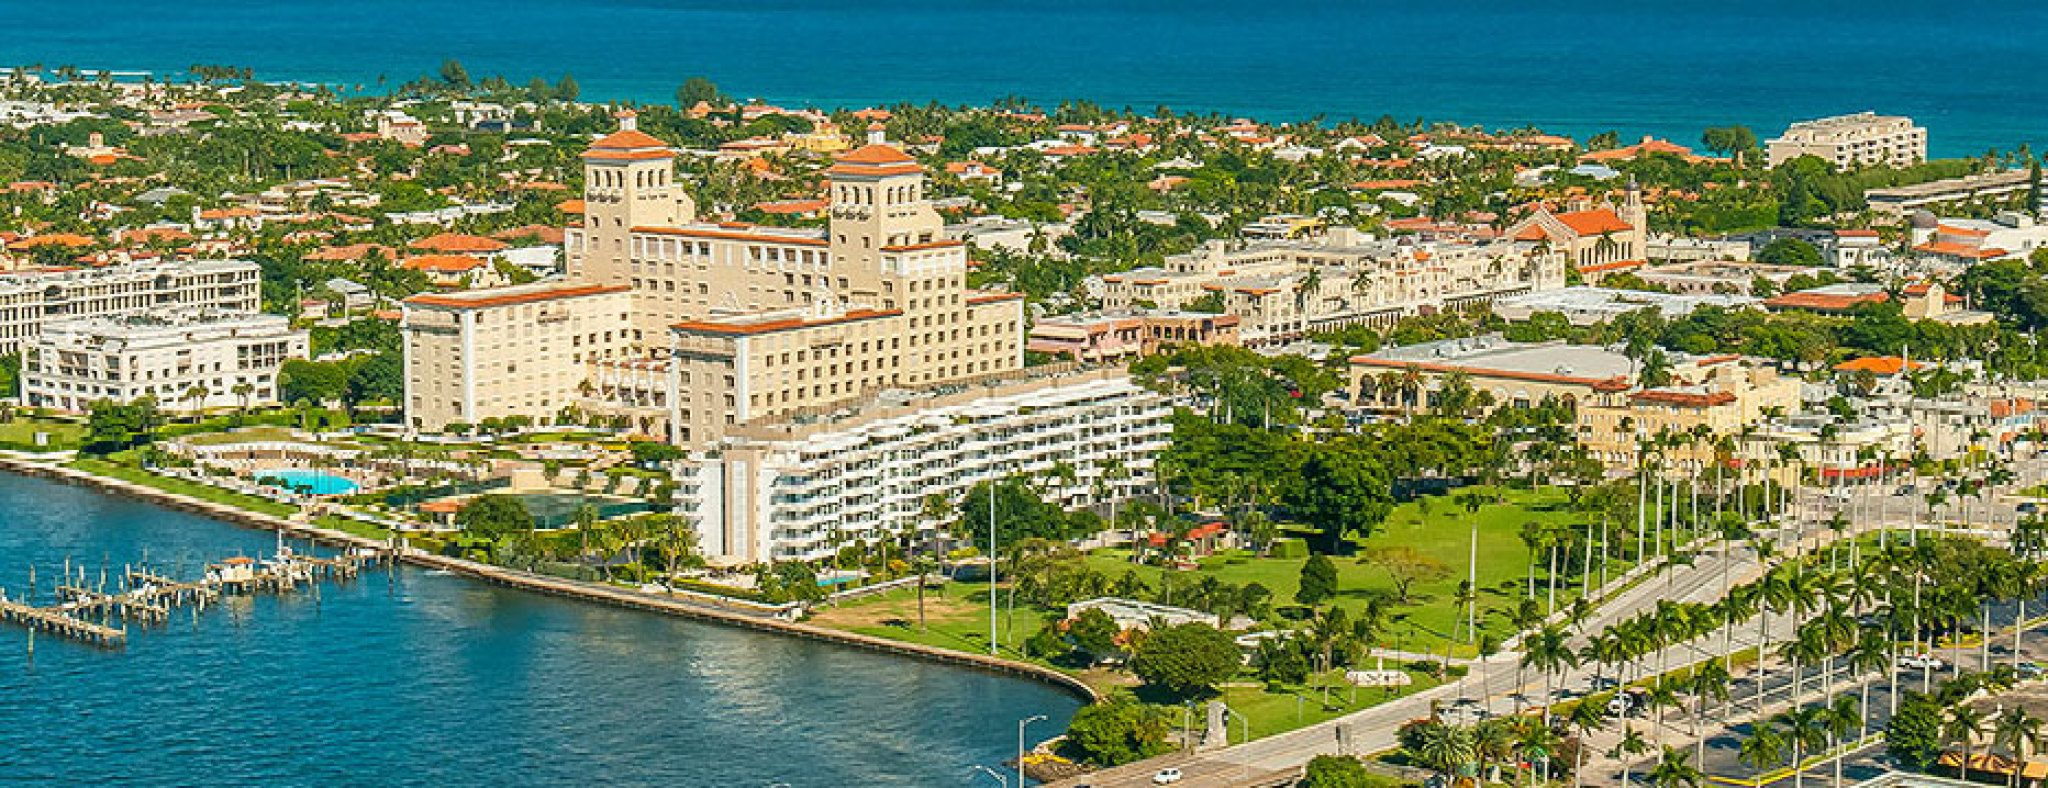 Featured Community - For More than a Century, Palm Beach has been the Gold Standard of Florida's Gold Coast.